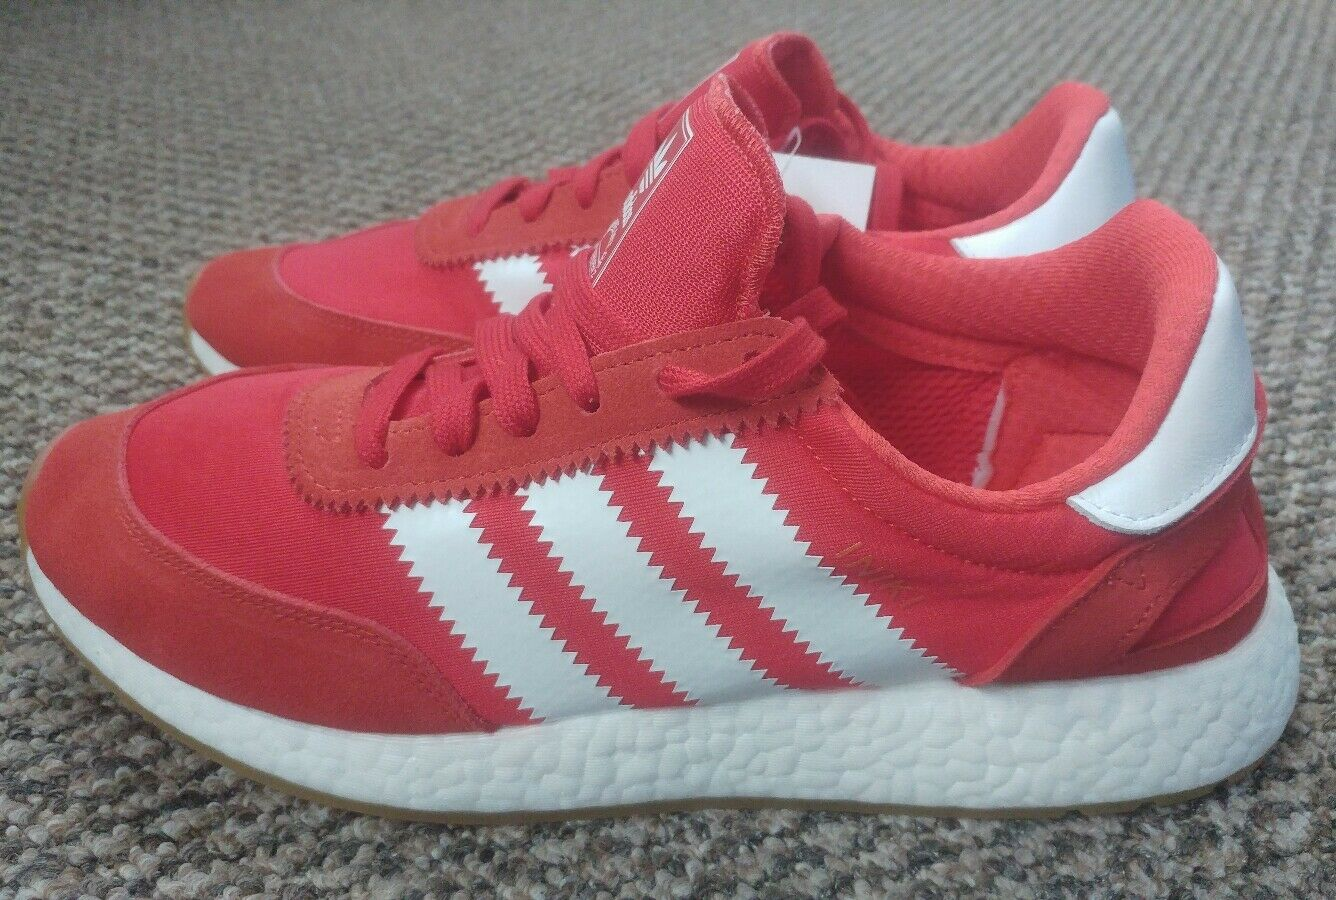 2007 Adidas - MUNCHEN UK8 City Series - Adidas Rare Ltd Edition with lots of detail 91aaa7